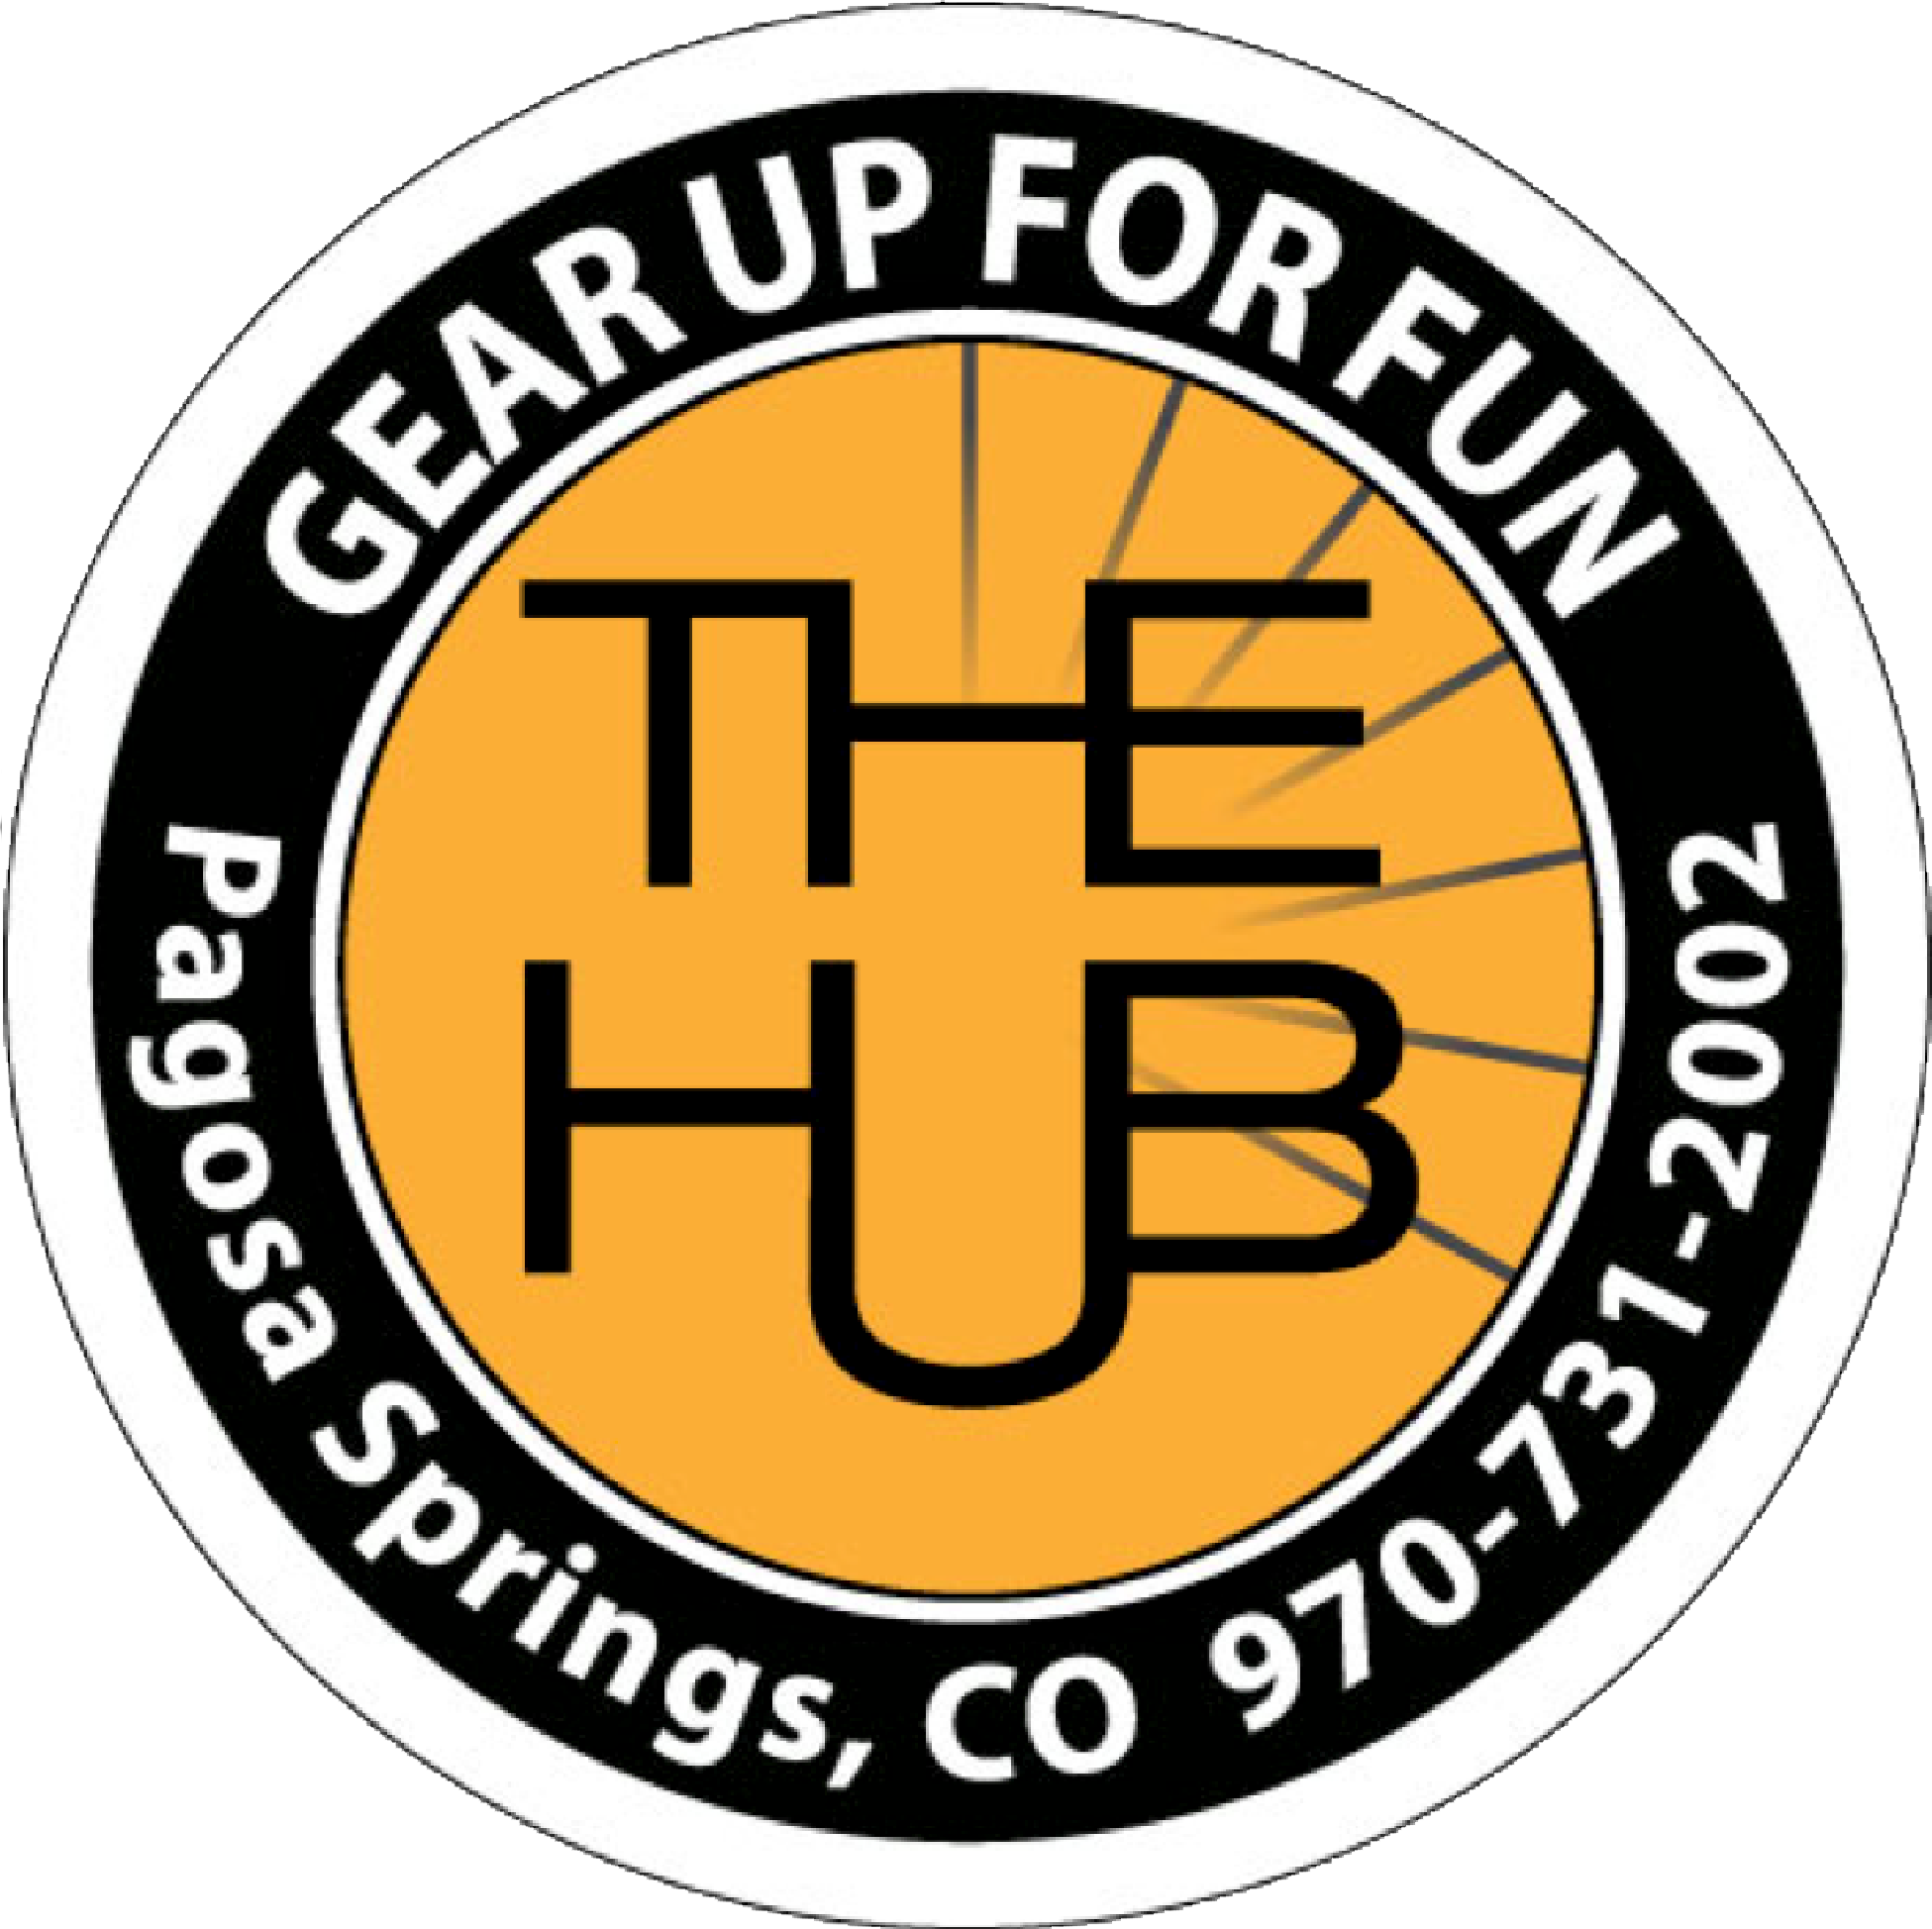 The HUB: Gear Up For Fun! Pagosa Springs Colorado Logo